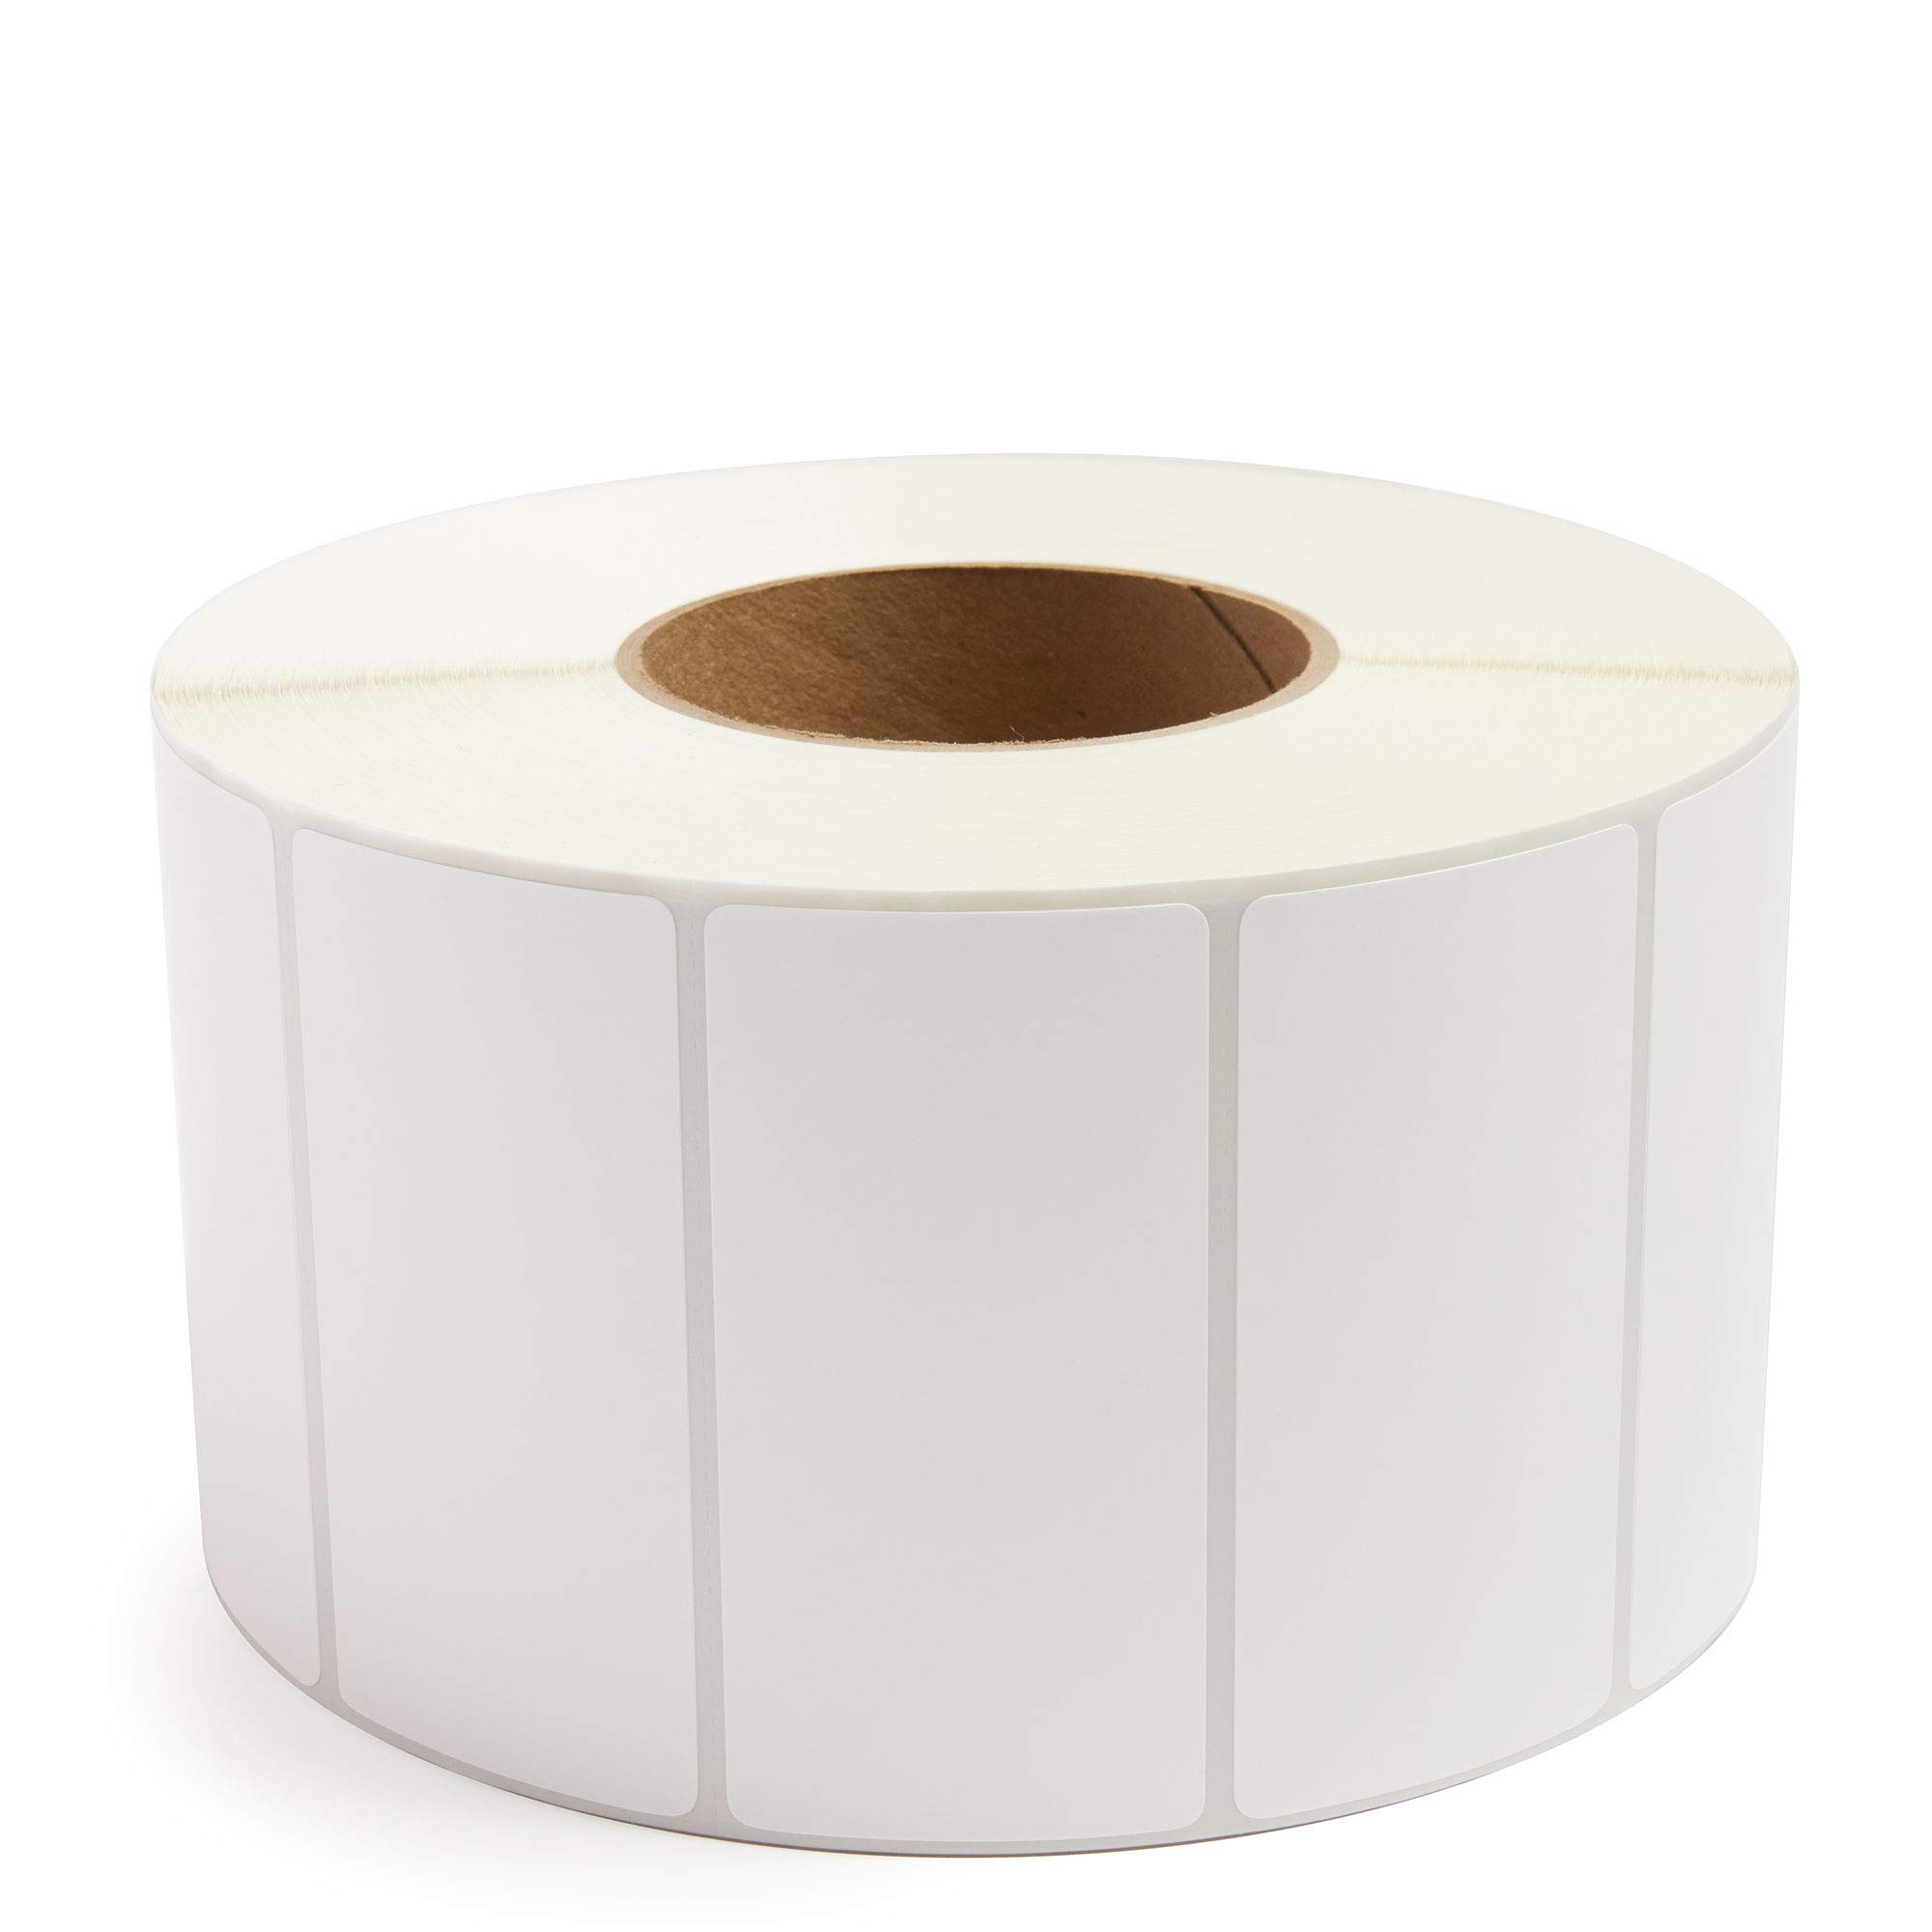 Smith Corona - 4x2 Thermal Transfer Labels (3'' Core) - 2875 Labels/Roll - 4 Rolls by Smith Corona